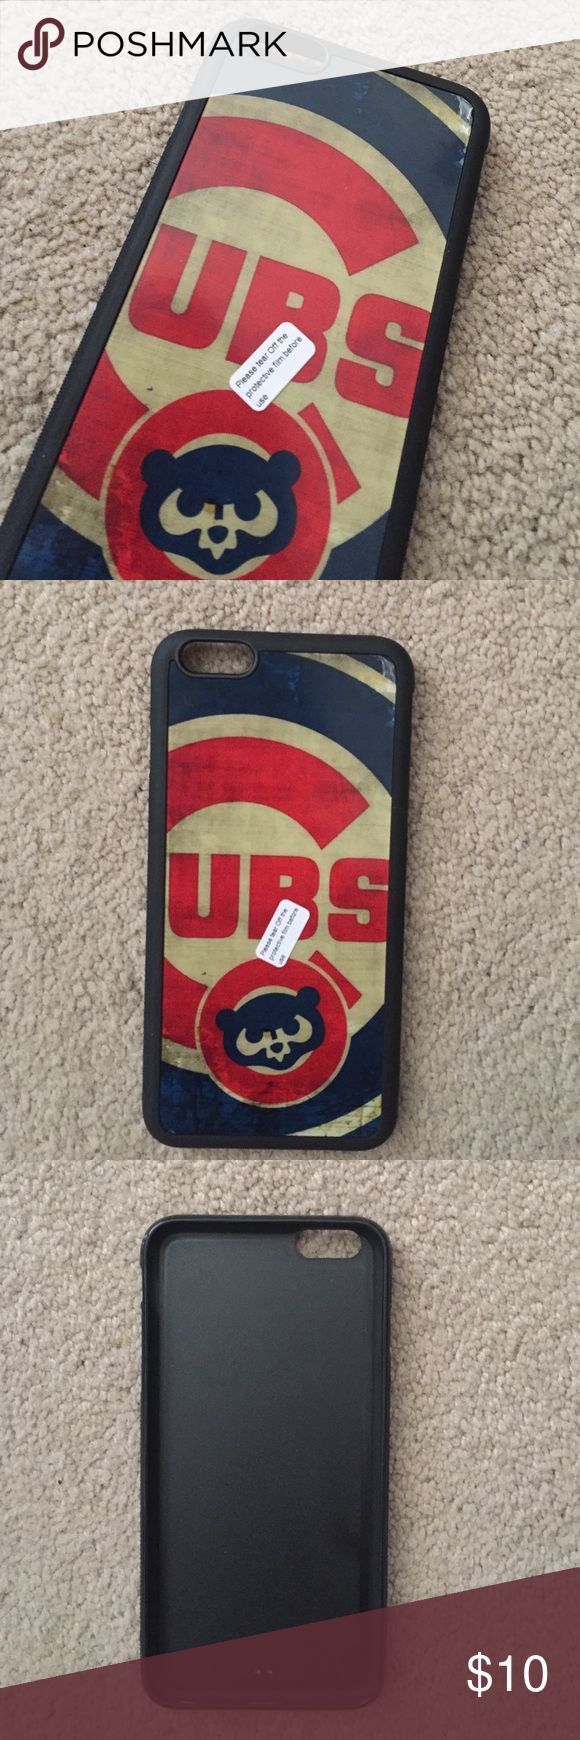 Chicago Cubs iPhone 6 Plus phone case Never been used Chicago Cubs iPhone 6Plus phone cover. Comes with a silicone stand. Other